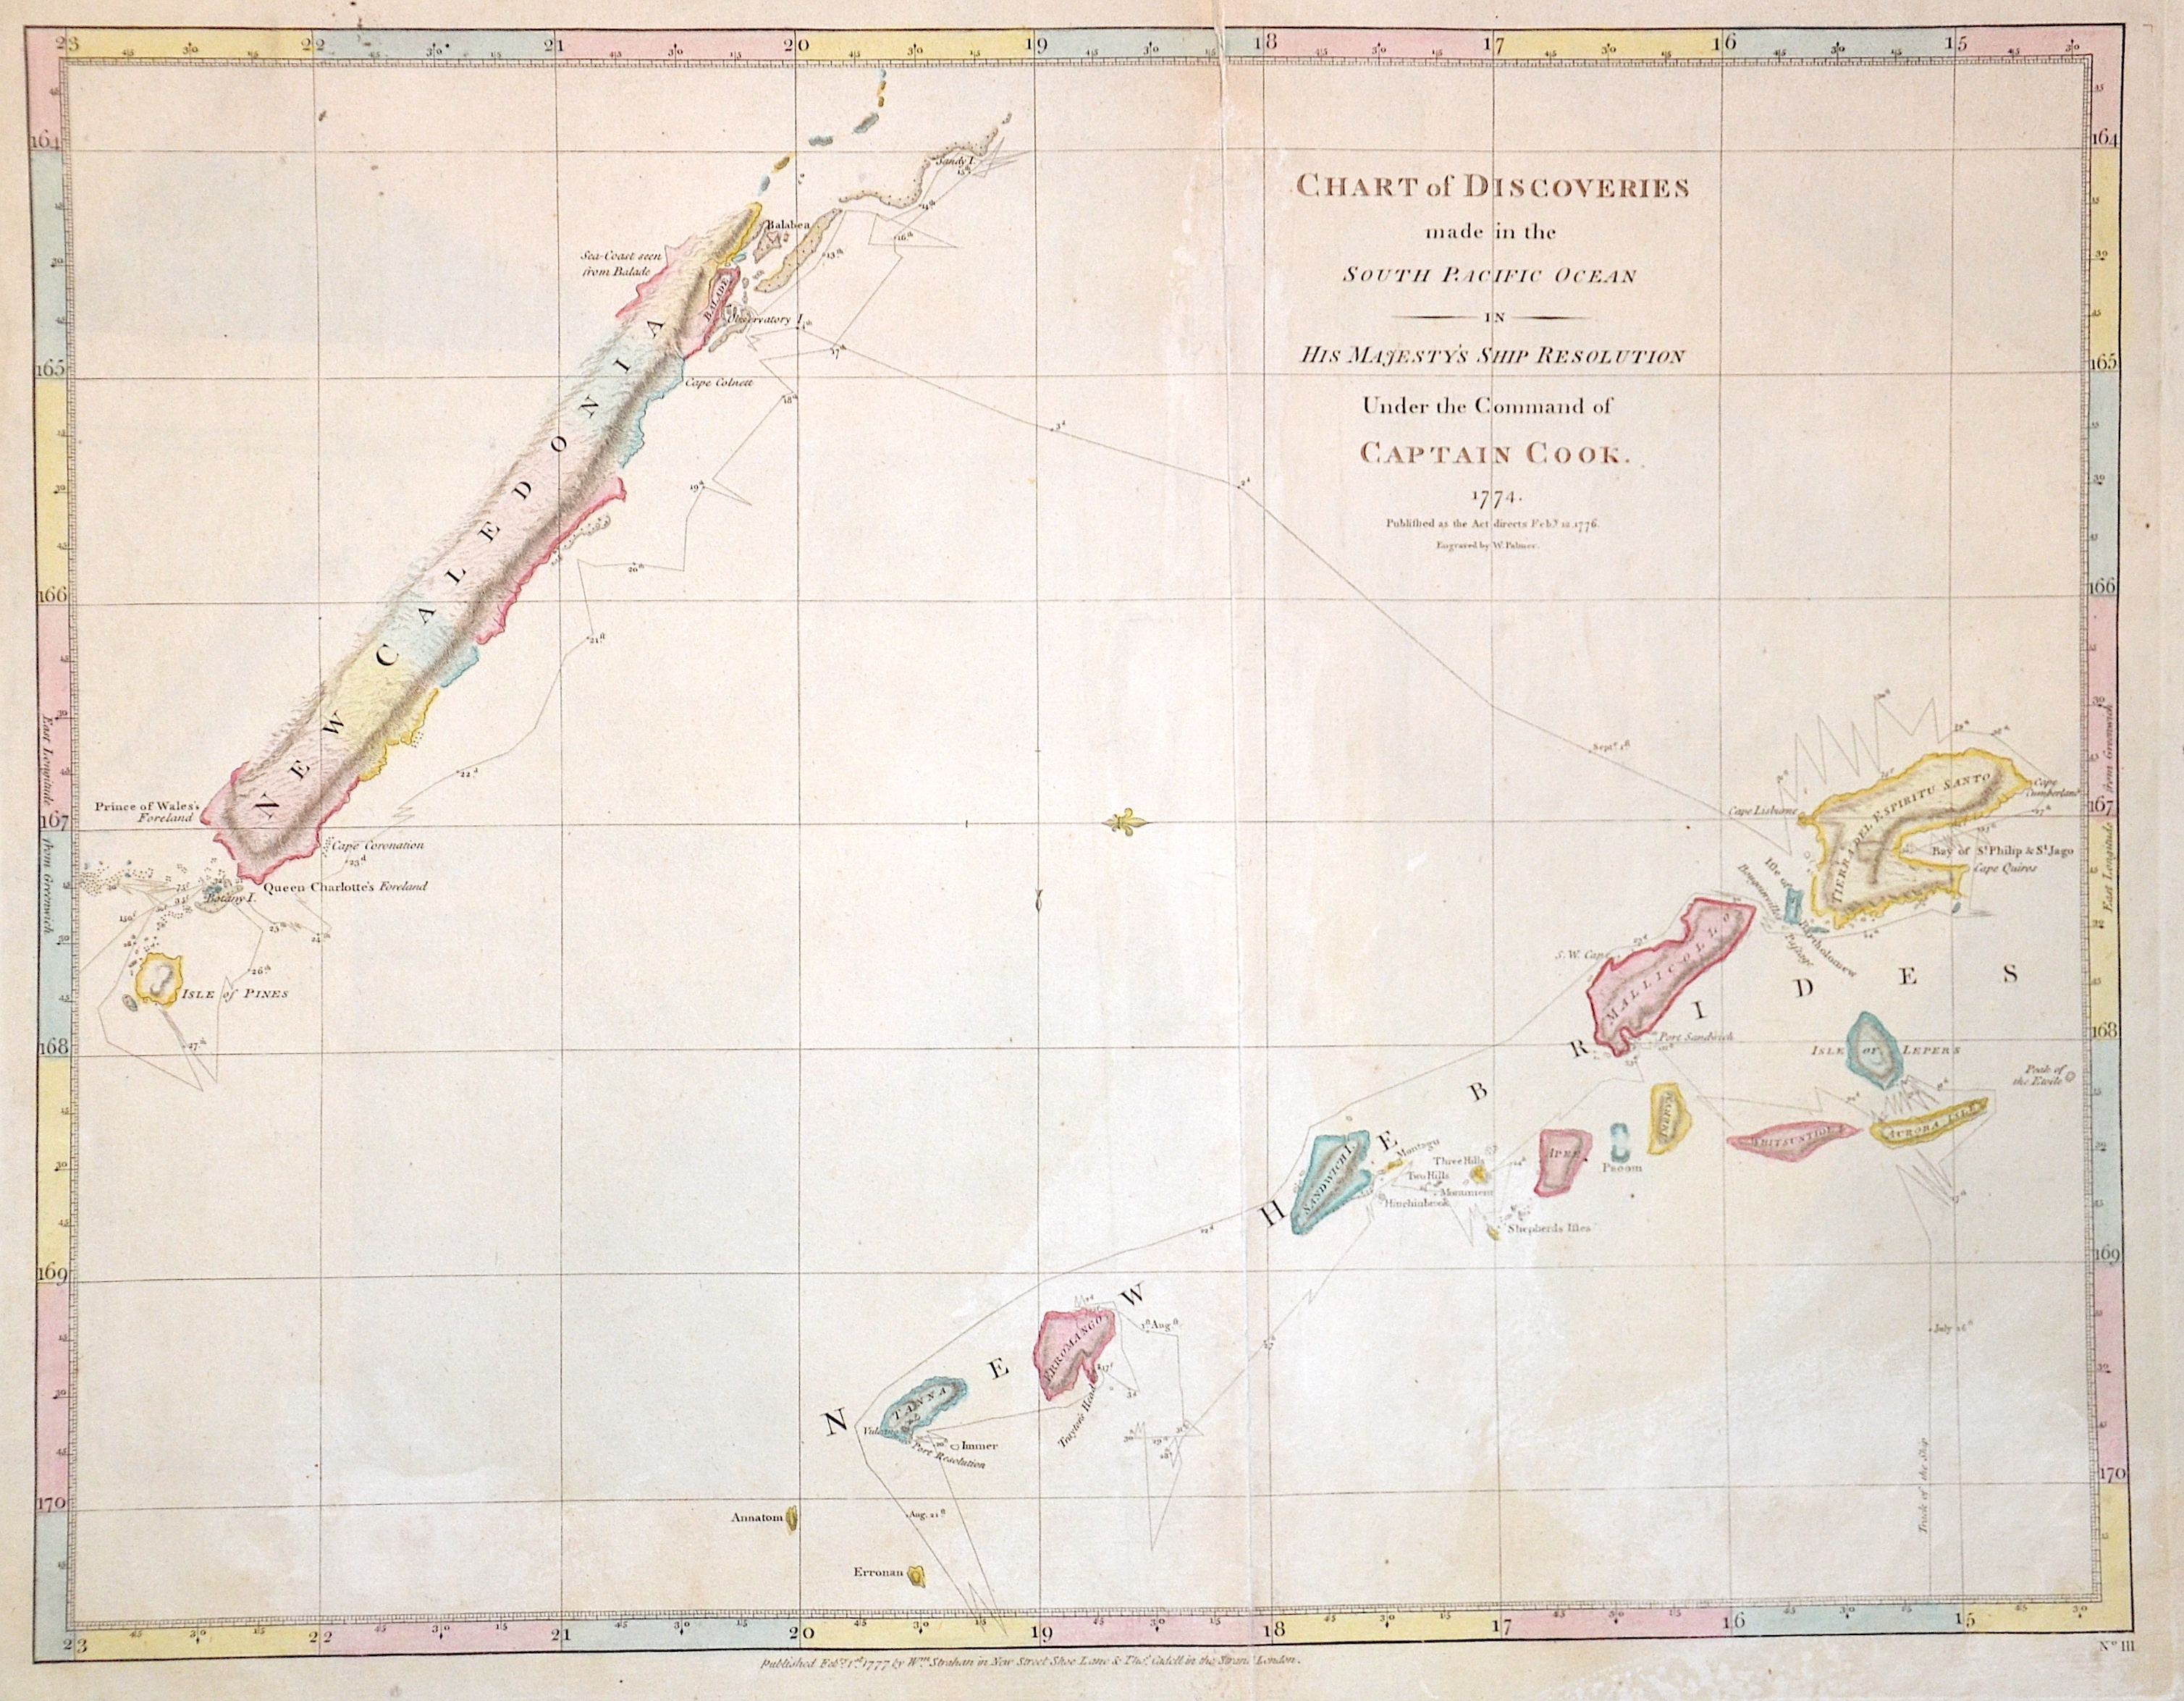 Palmer W. Chart of Discoveries made in the South Pacific Ocean in his Majesty's ship resolution Under the Command of Captain Cook. 1774.